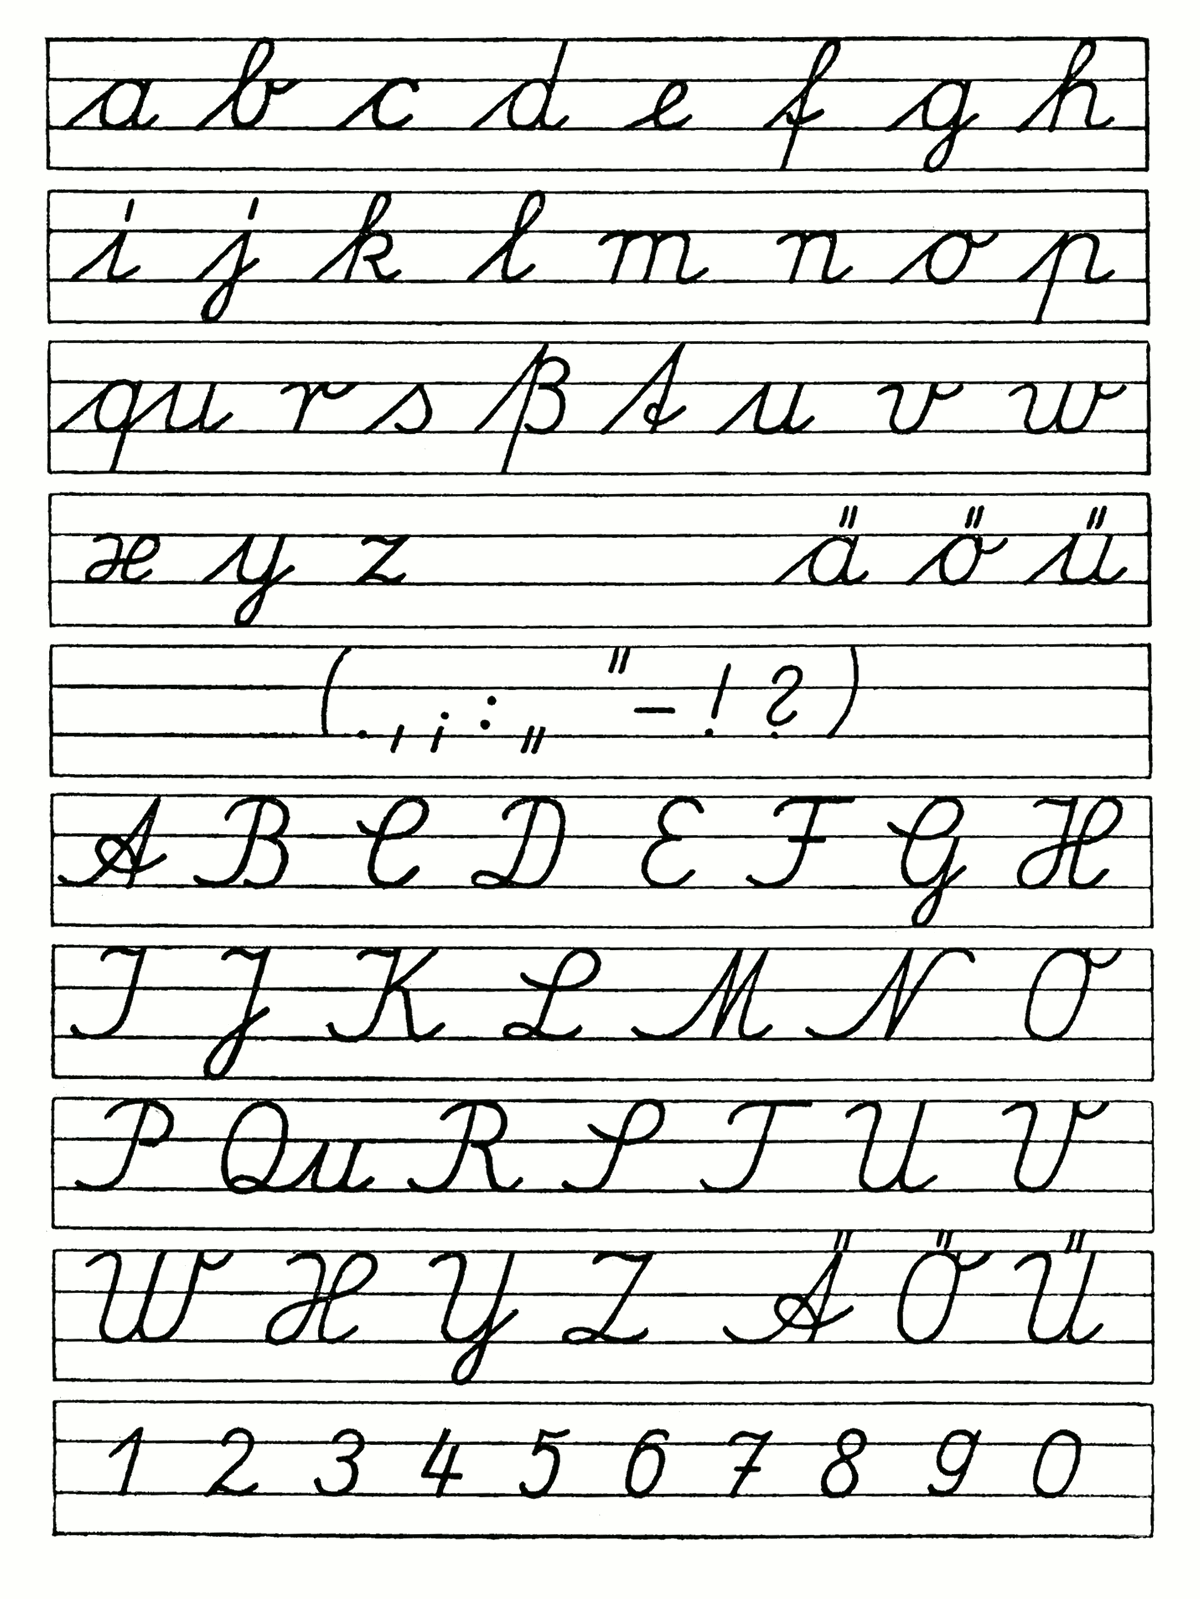 Wikipedia Gdr Handwriting Link To Discussion Of Different German Cursive That Was Taught Includes L Lettering Alphabet Cursive Writing Handwriting Alphabet